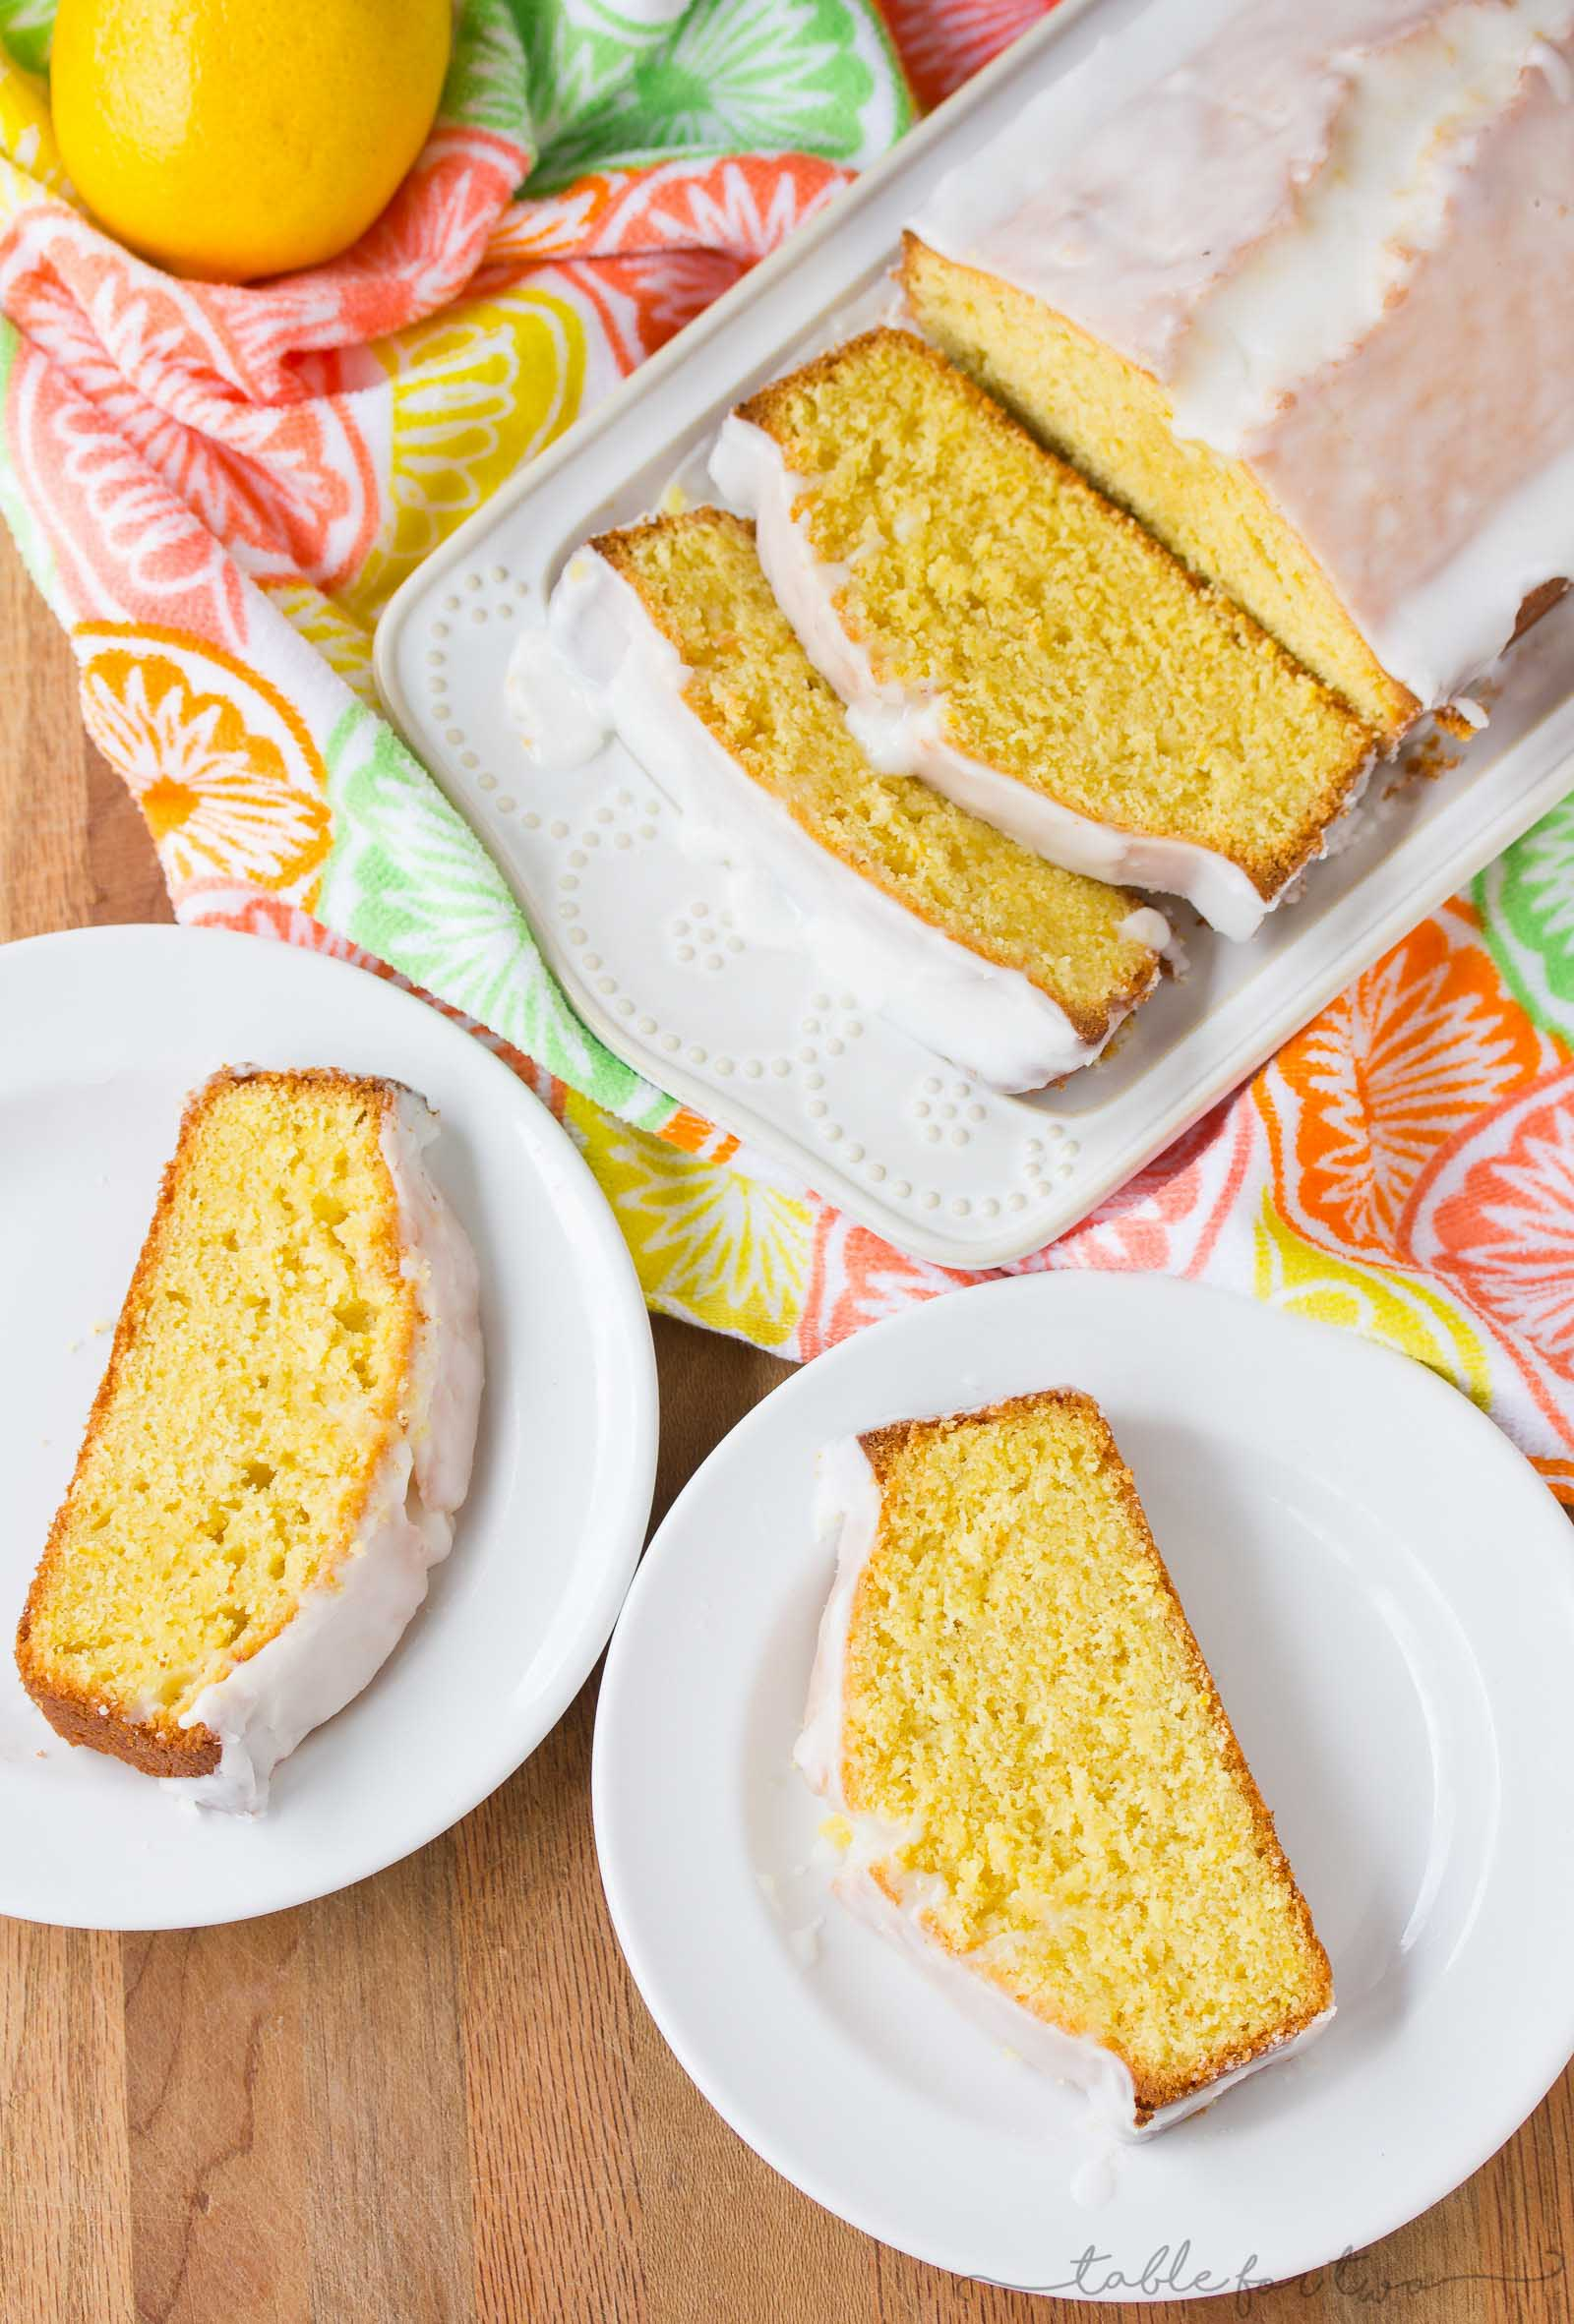 This Starbucks copycat lemon pound cake recipe will bring you a feeling of Spring in your kitchen! The lemon flavor bursts in every bite. It's so fresh and fragrant!